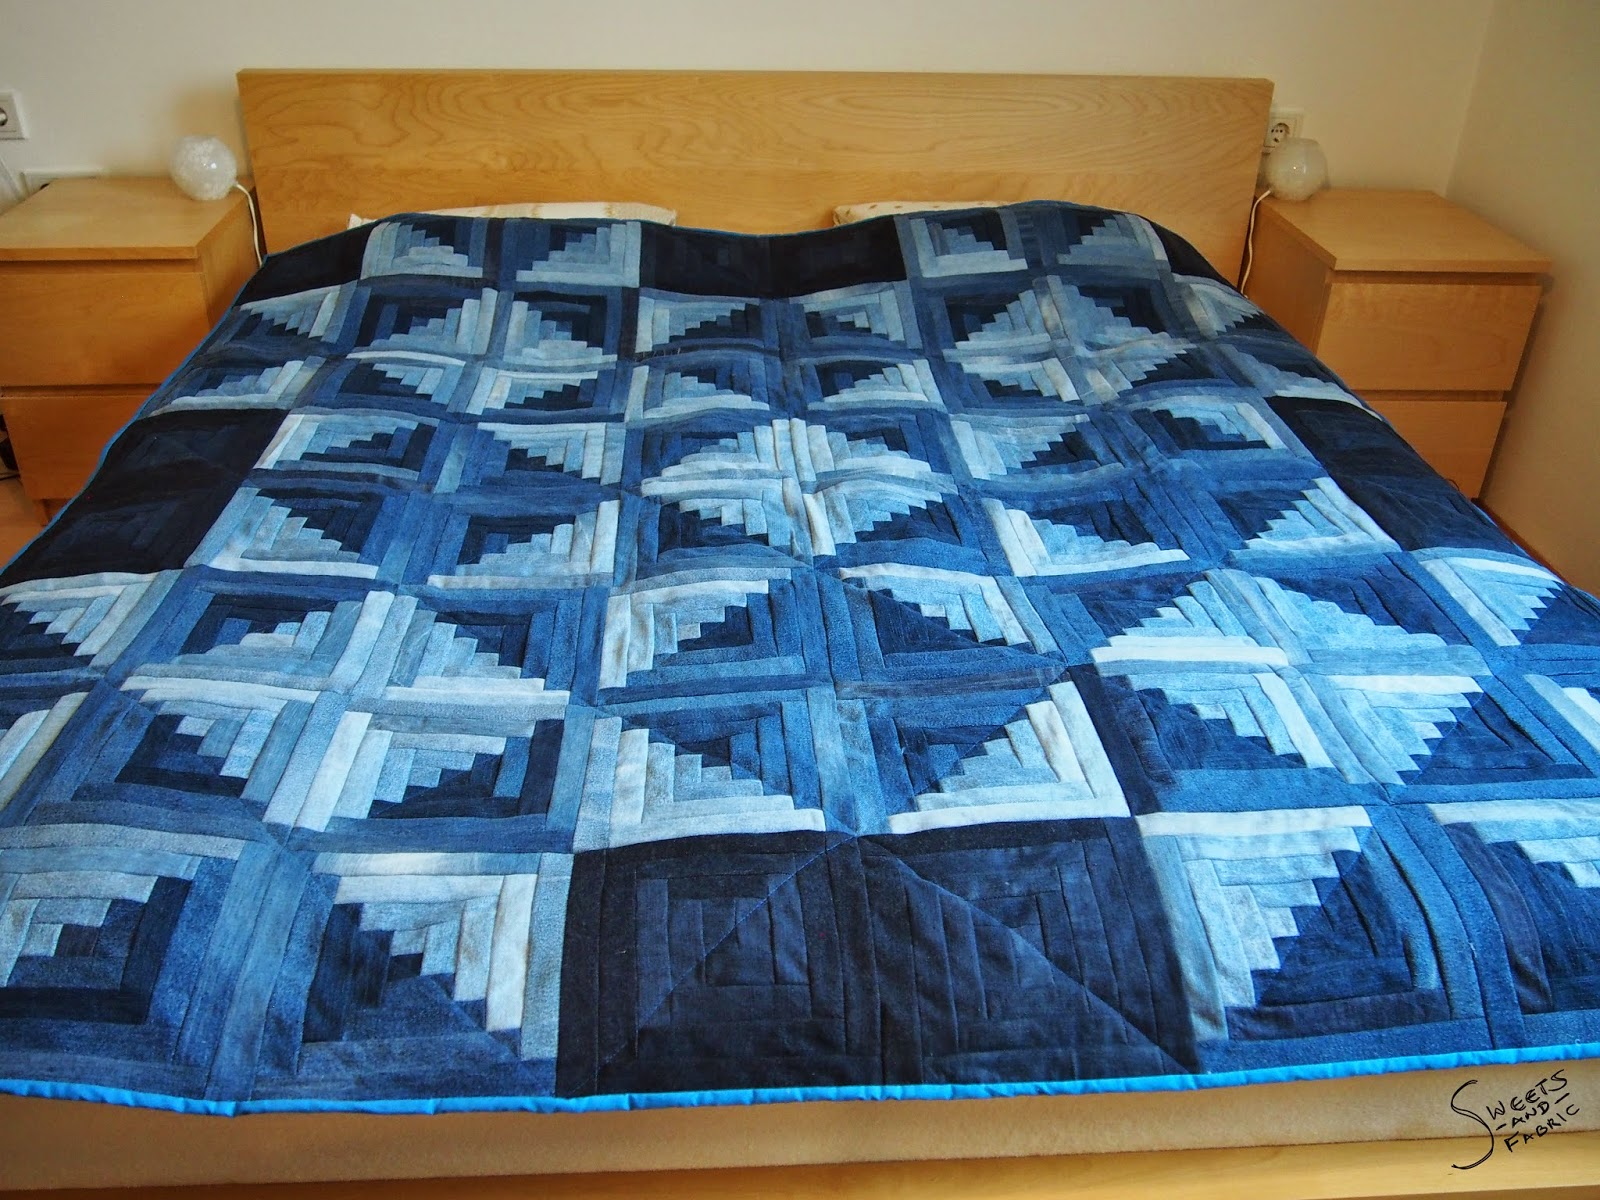 sweets fabric lessons learned jeans quilt. Black Bedroom Furniture Sets. Home Design Ideas